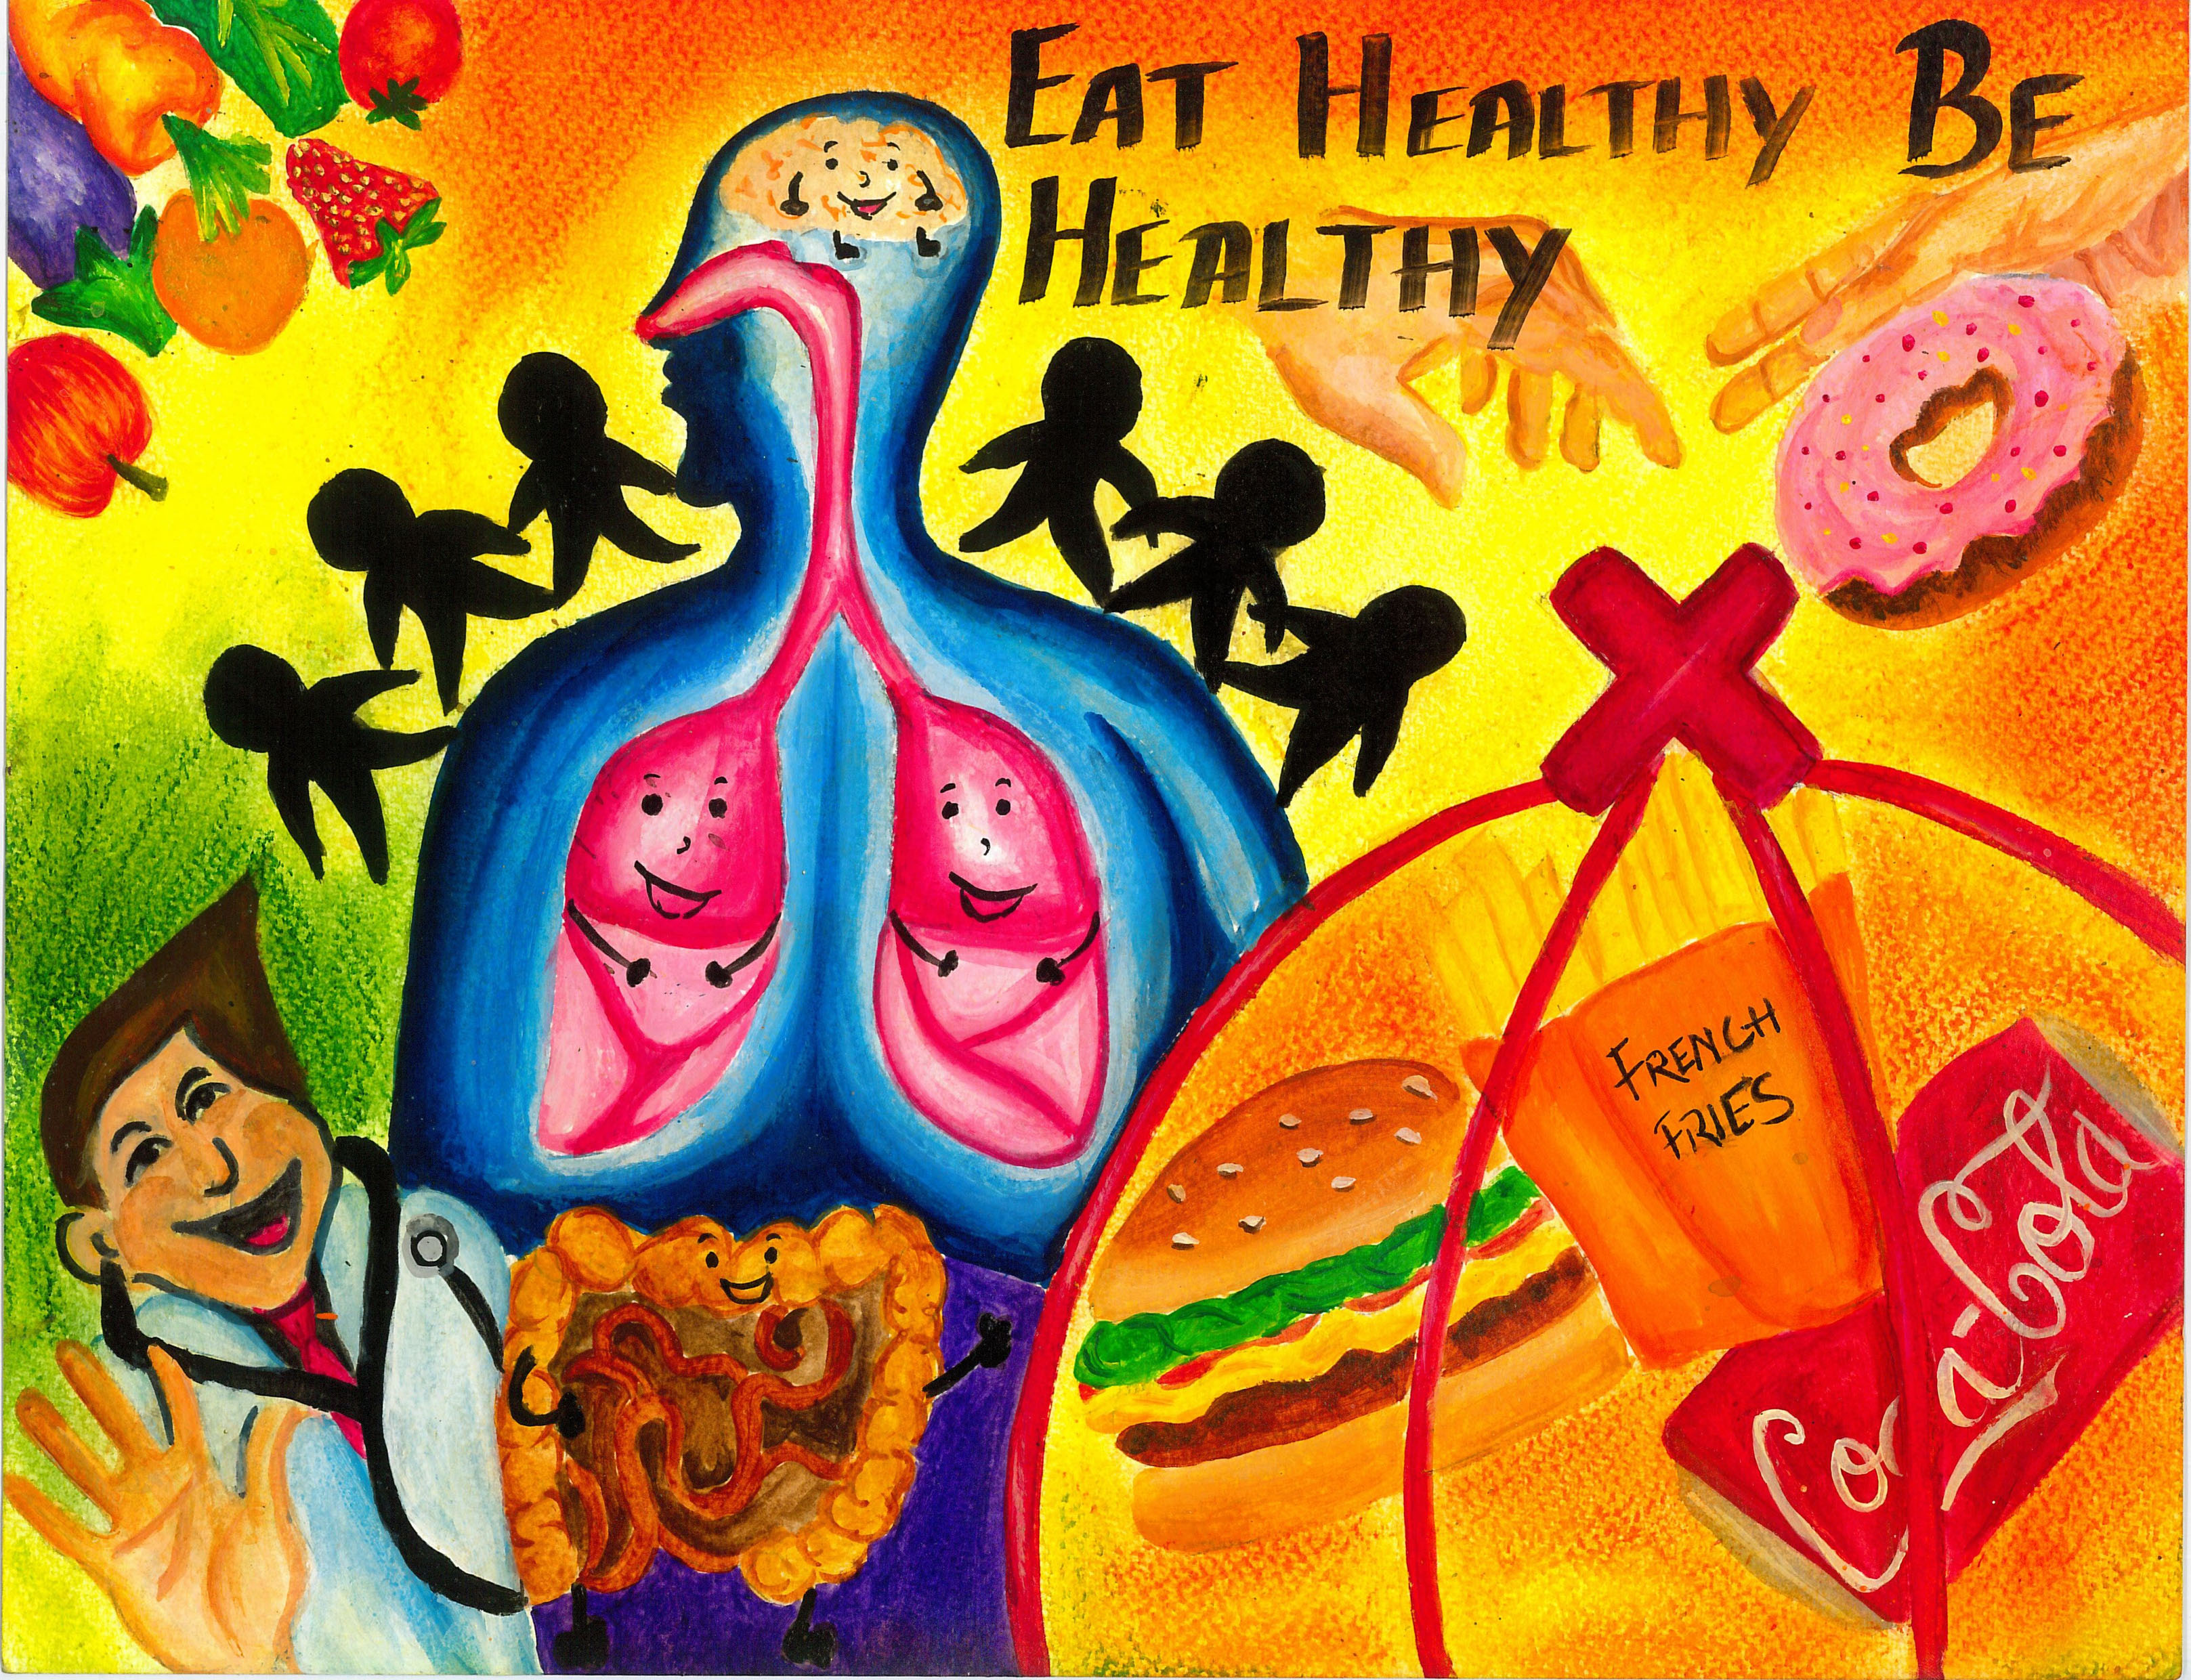 the doctor recommends that one should eat healthy food rather than junk food for your safe and healthy living